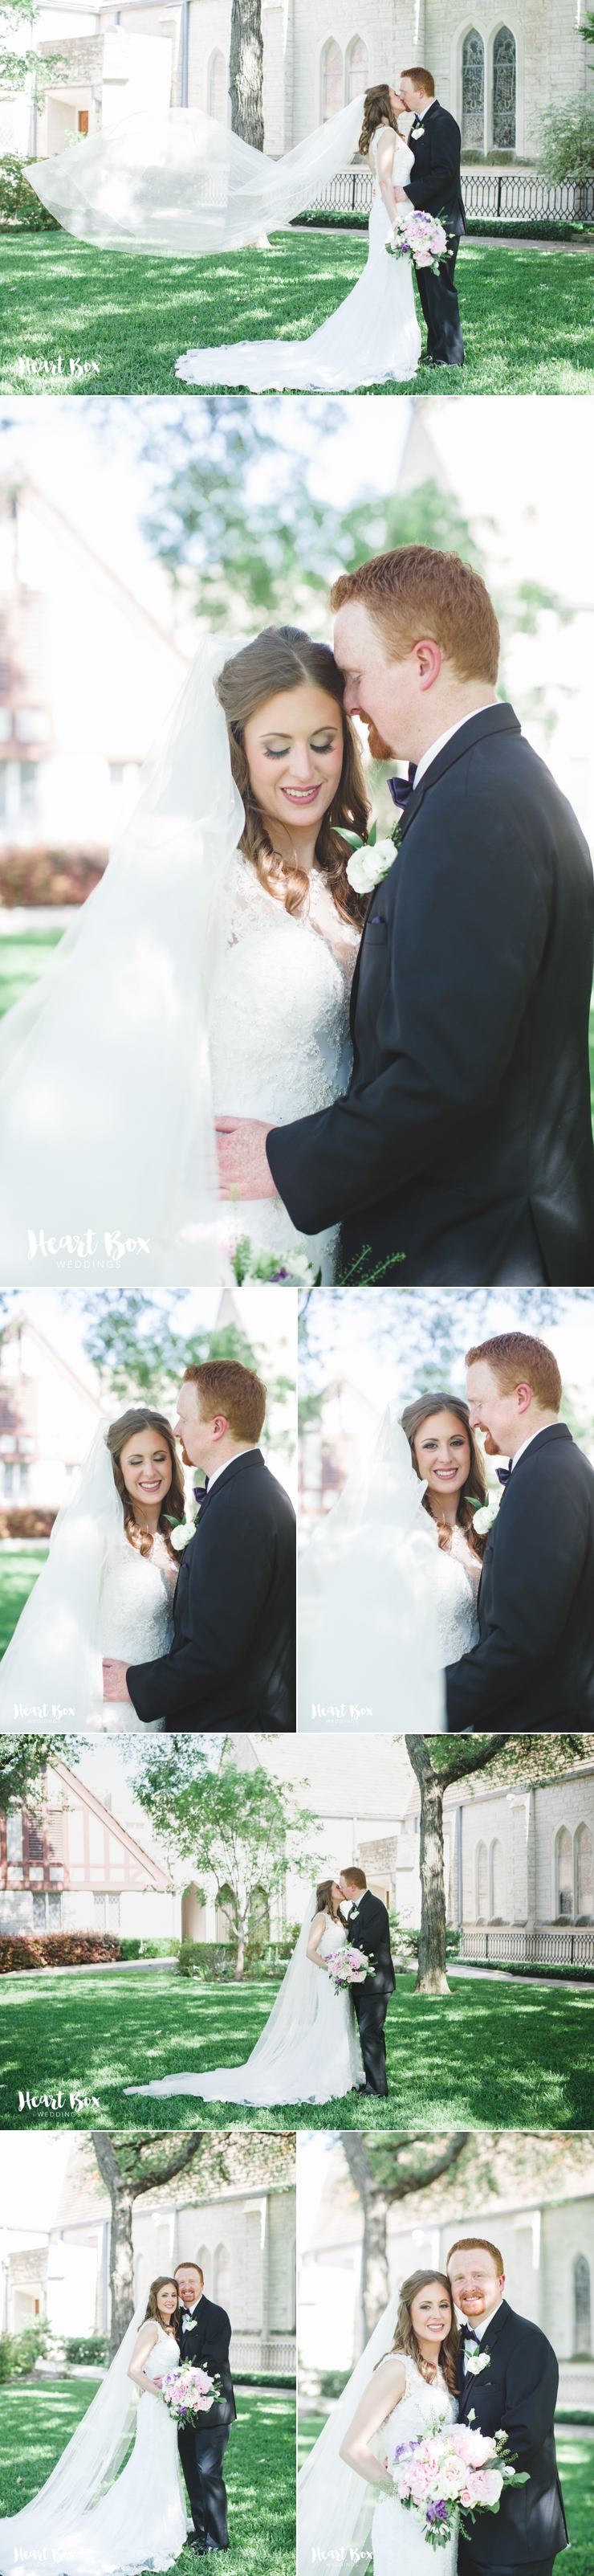 Price Wedding Blog Collages 5.jpg